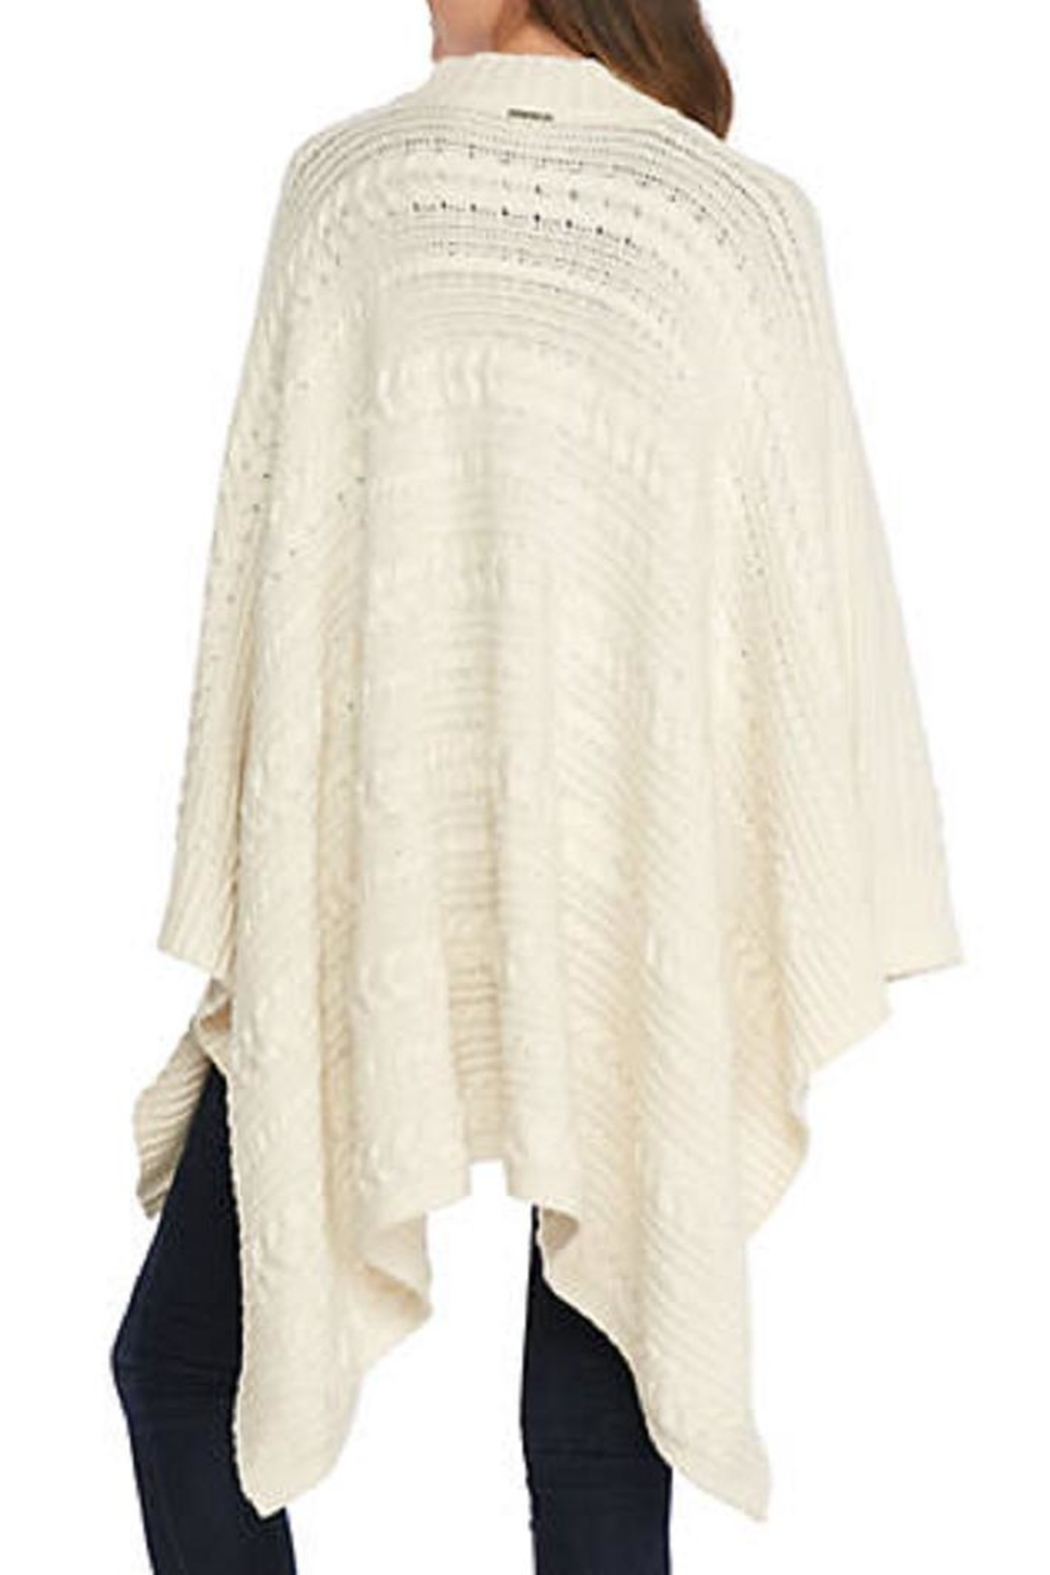 Michael Kors Cream Cable Cape - Front Full Image